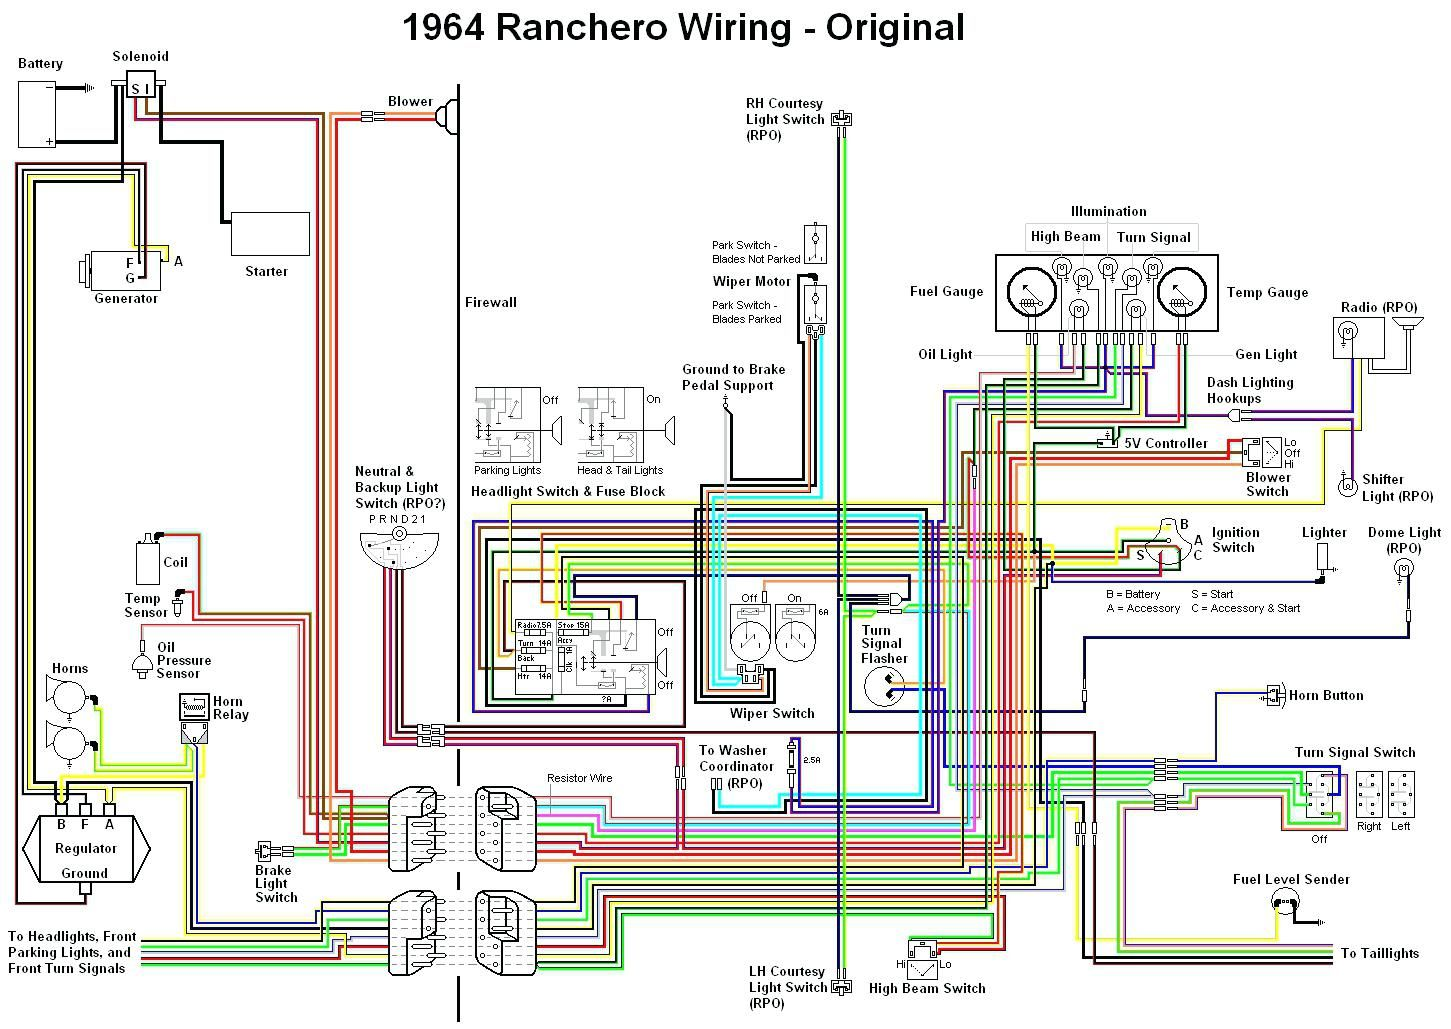 [DIAGRAM_09CH]  1966 Ford Falcon Wiring Honda 80 Wiring Diagram -  masat.kucing-garong-25.sardaracomunitaospitale.it | 1966 Falcon Wiring Diagrams |  | Wiring Diagram and Schematics